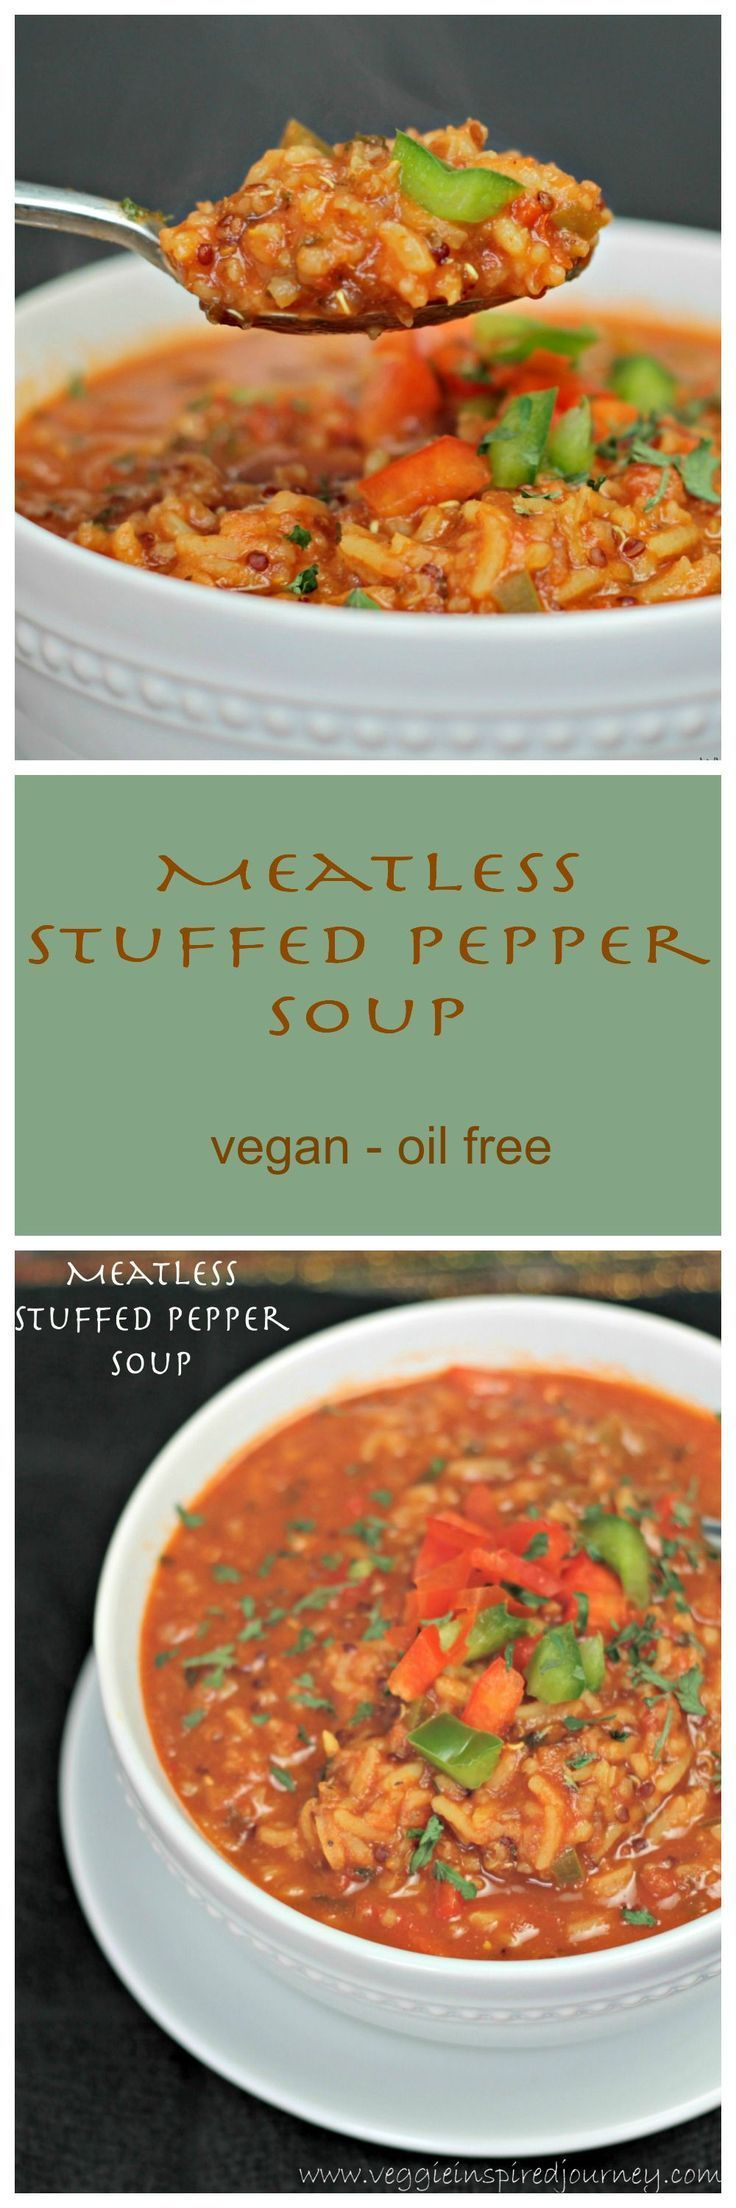 Meatless Stuffed Pepper Soup - vegan | dairy free | oil free | thick | hearty | bulgur | red peppers | green peppers | meatless monday | vegetarian | comfort food |